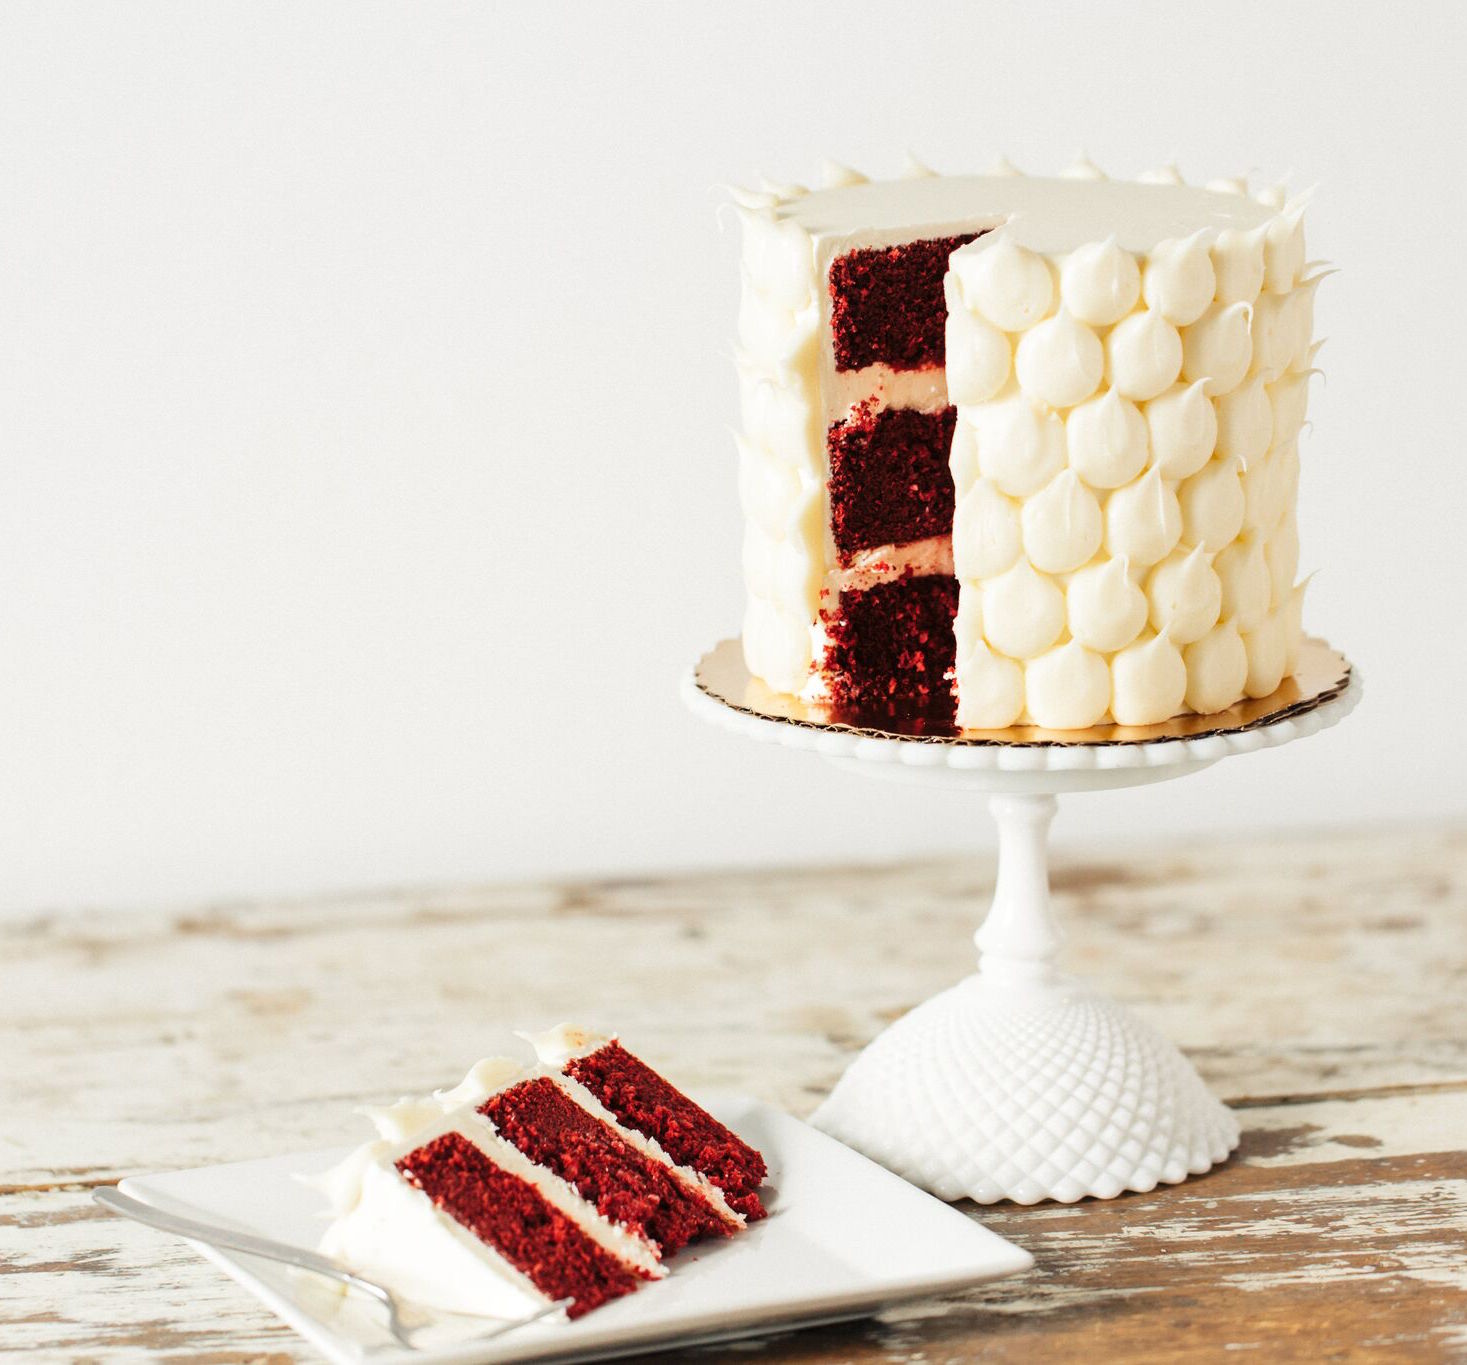 Red Velvet  - Red Velvet Cake, Cream Cheese Filling and Frosting